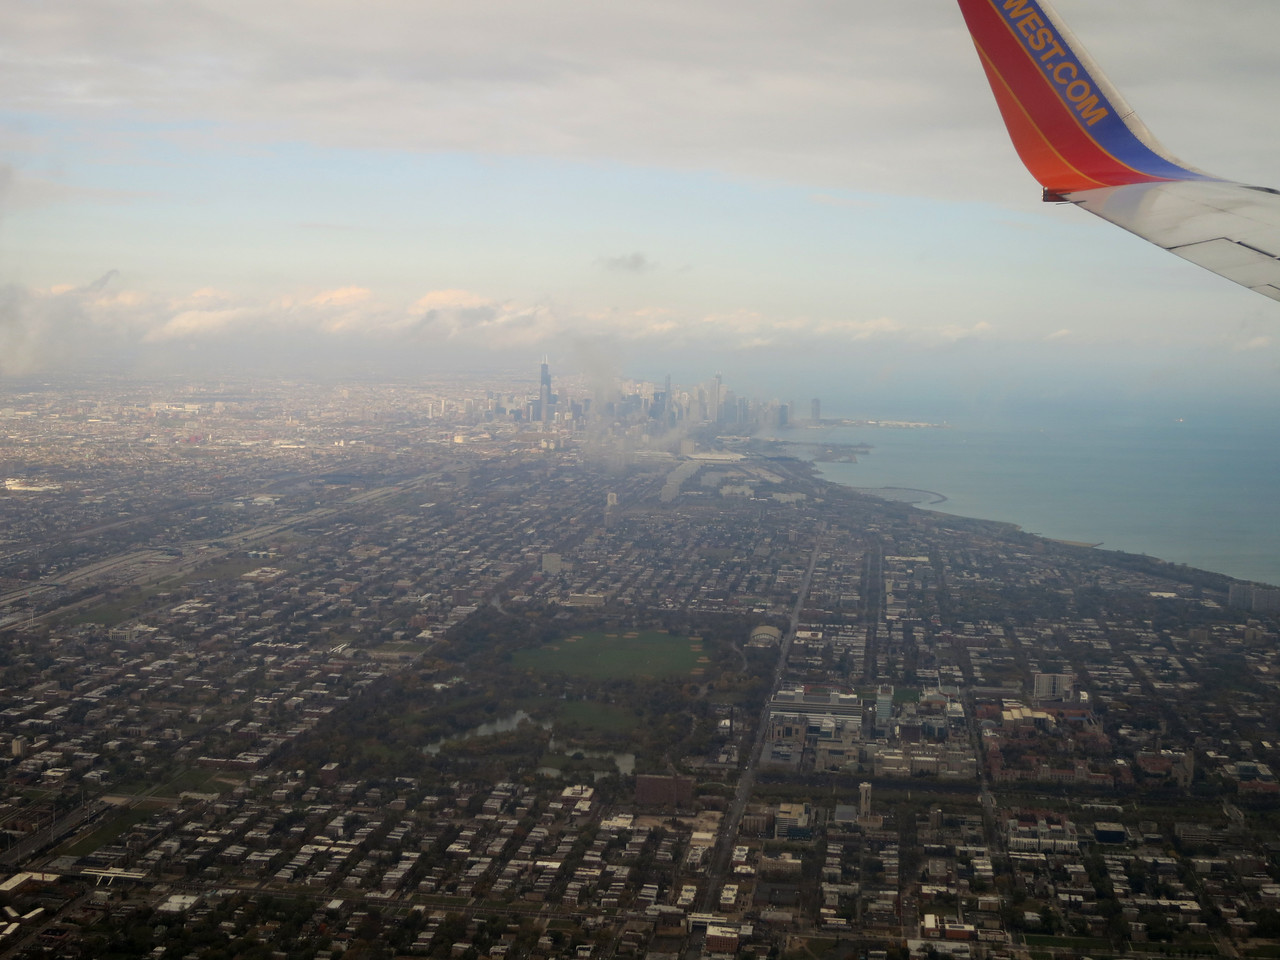 Omaha - RDU thru Chicago